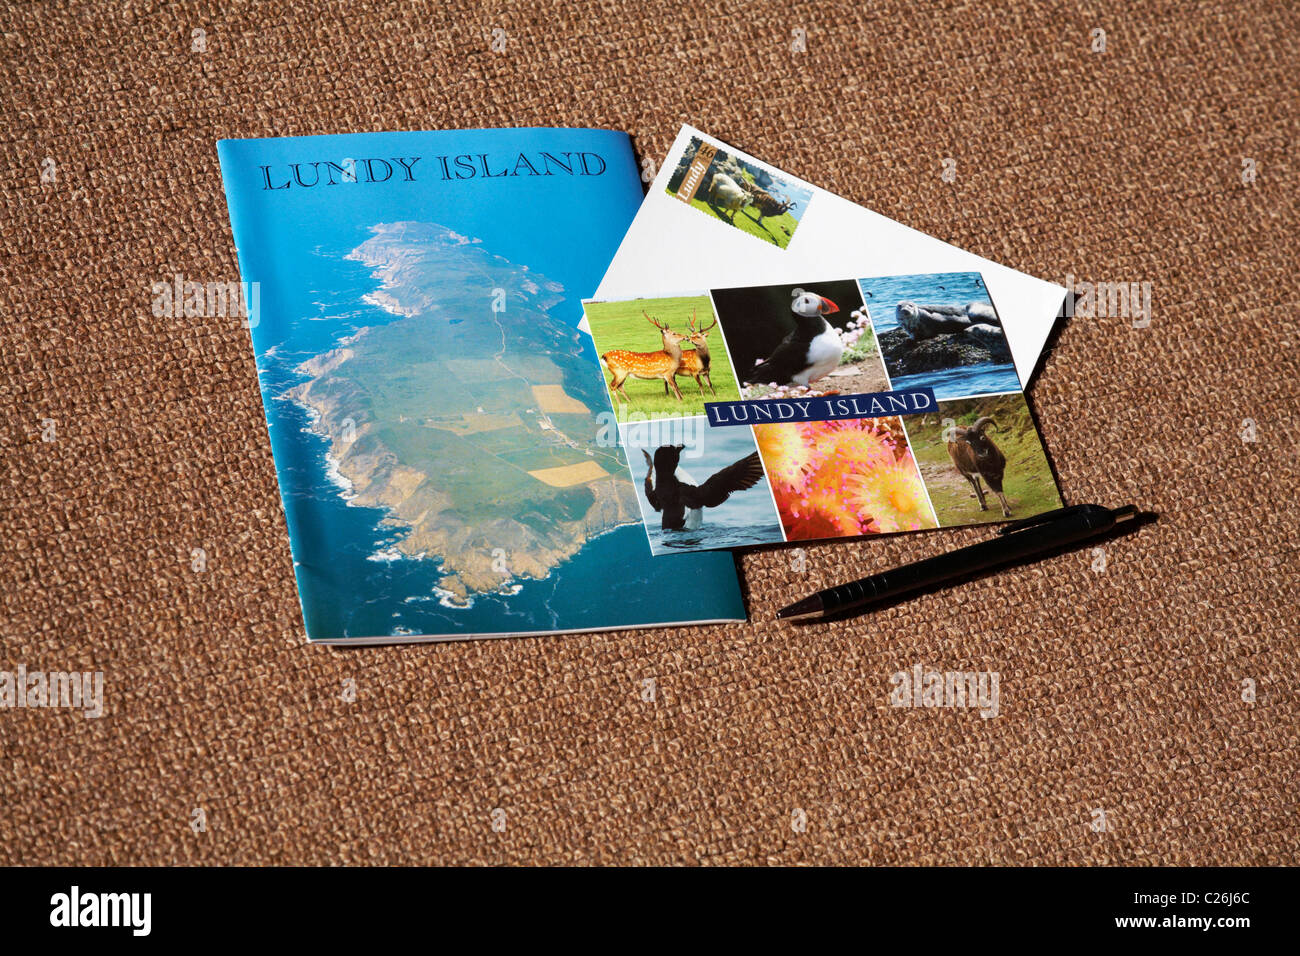 Lundy Island postcards and souvenir book on Lundy Island, Devon, England UK in March - Stock Image